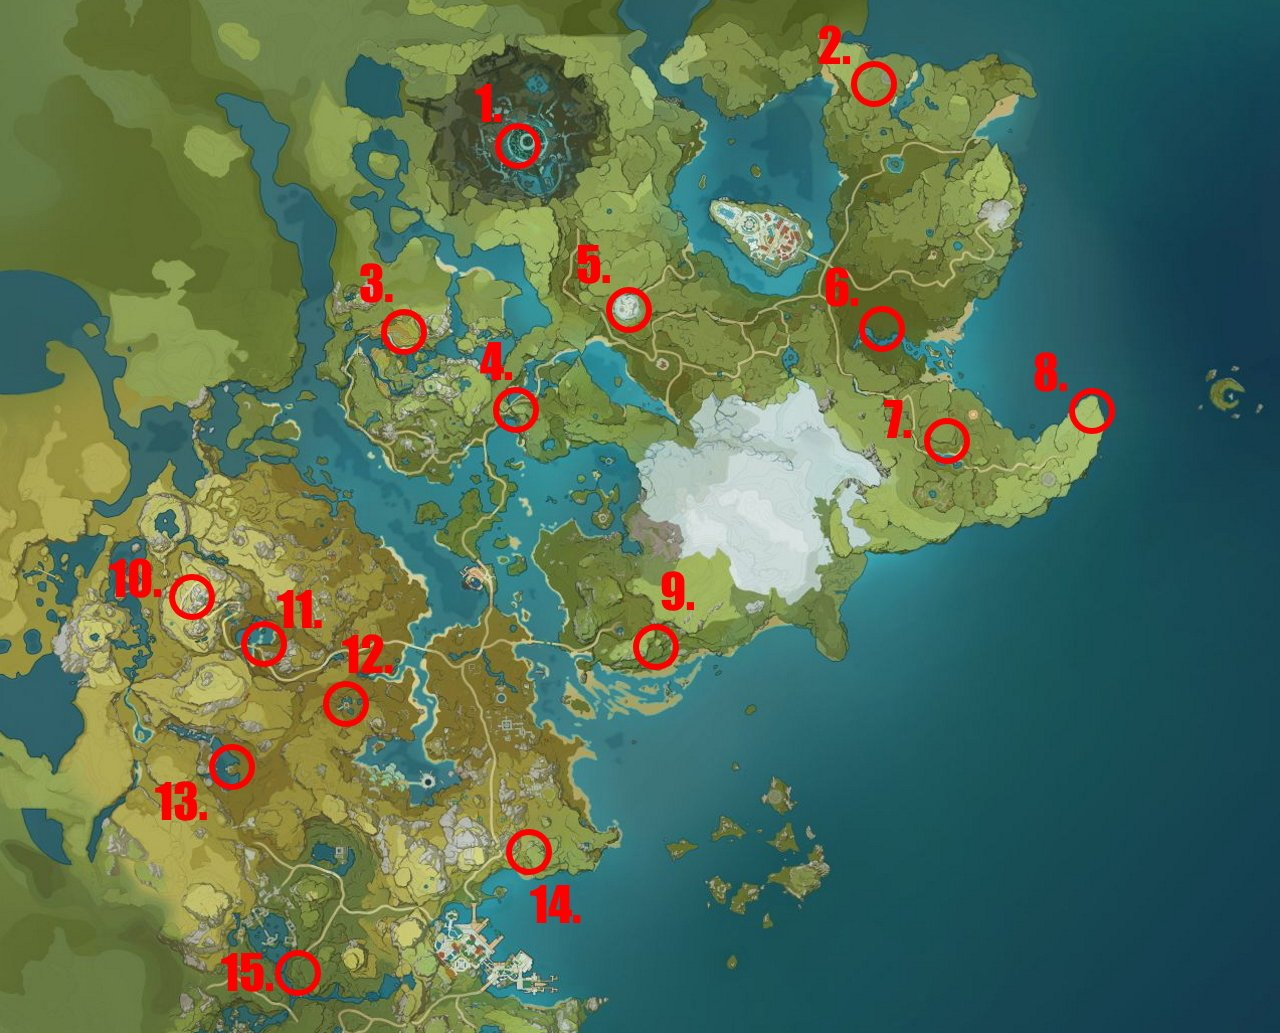 Genshin Impact Hilichurl Wei locations map big hilichurl